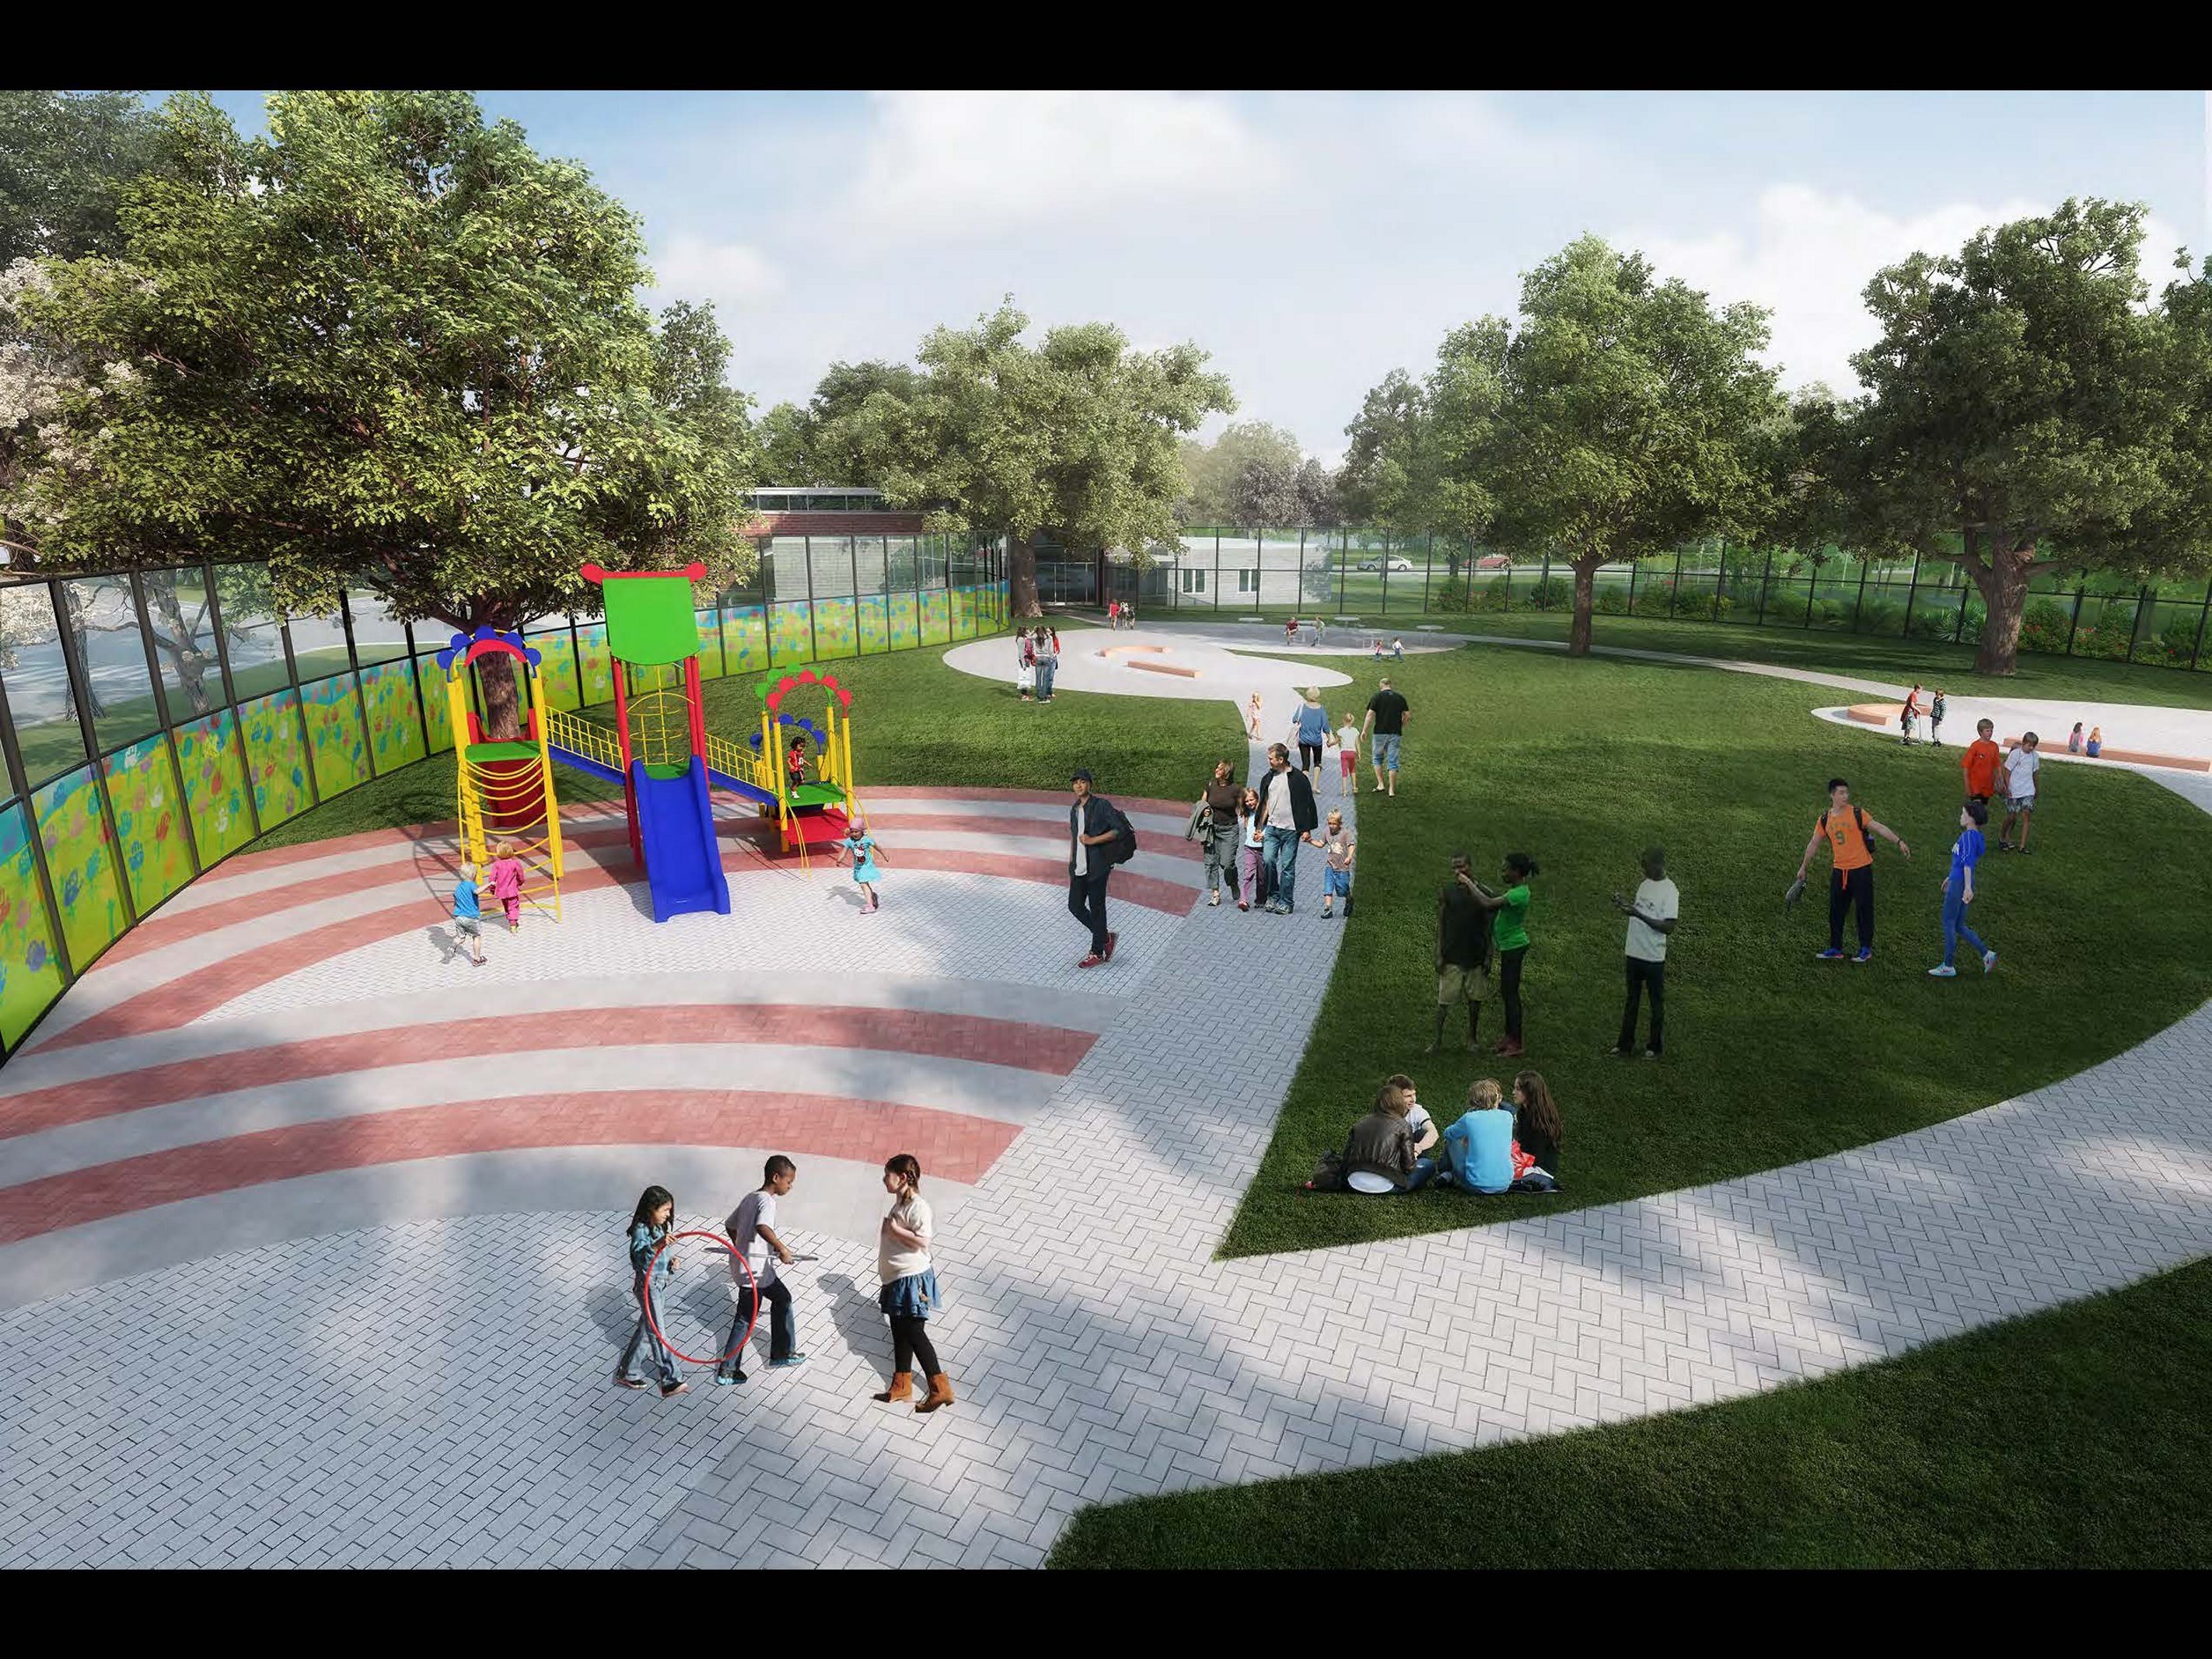 Artist's rendering shows the secure outdoor recreation area to be created when the Western New York Children's Psychiatric Center moves to the Buffalo Psychiatric Center campus.